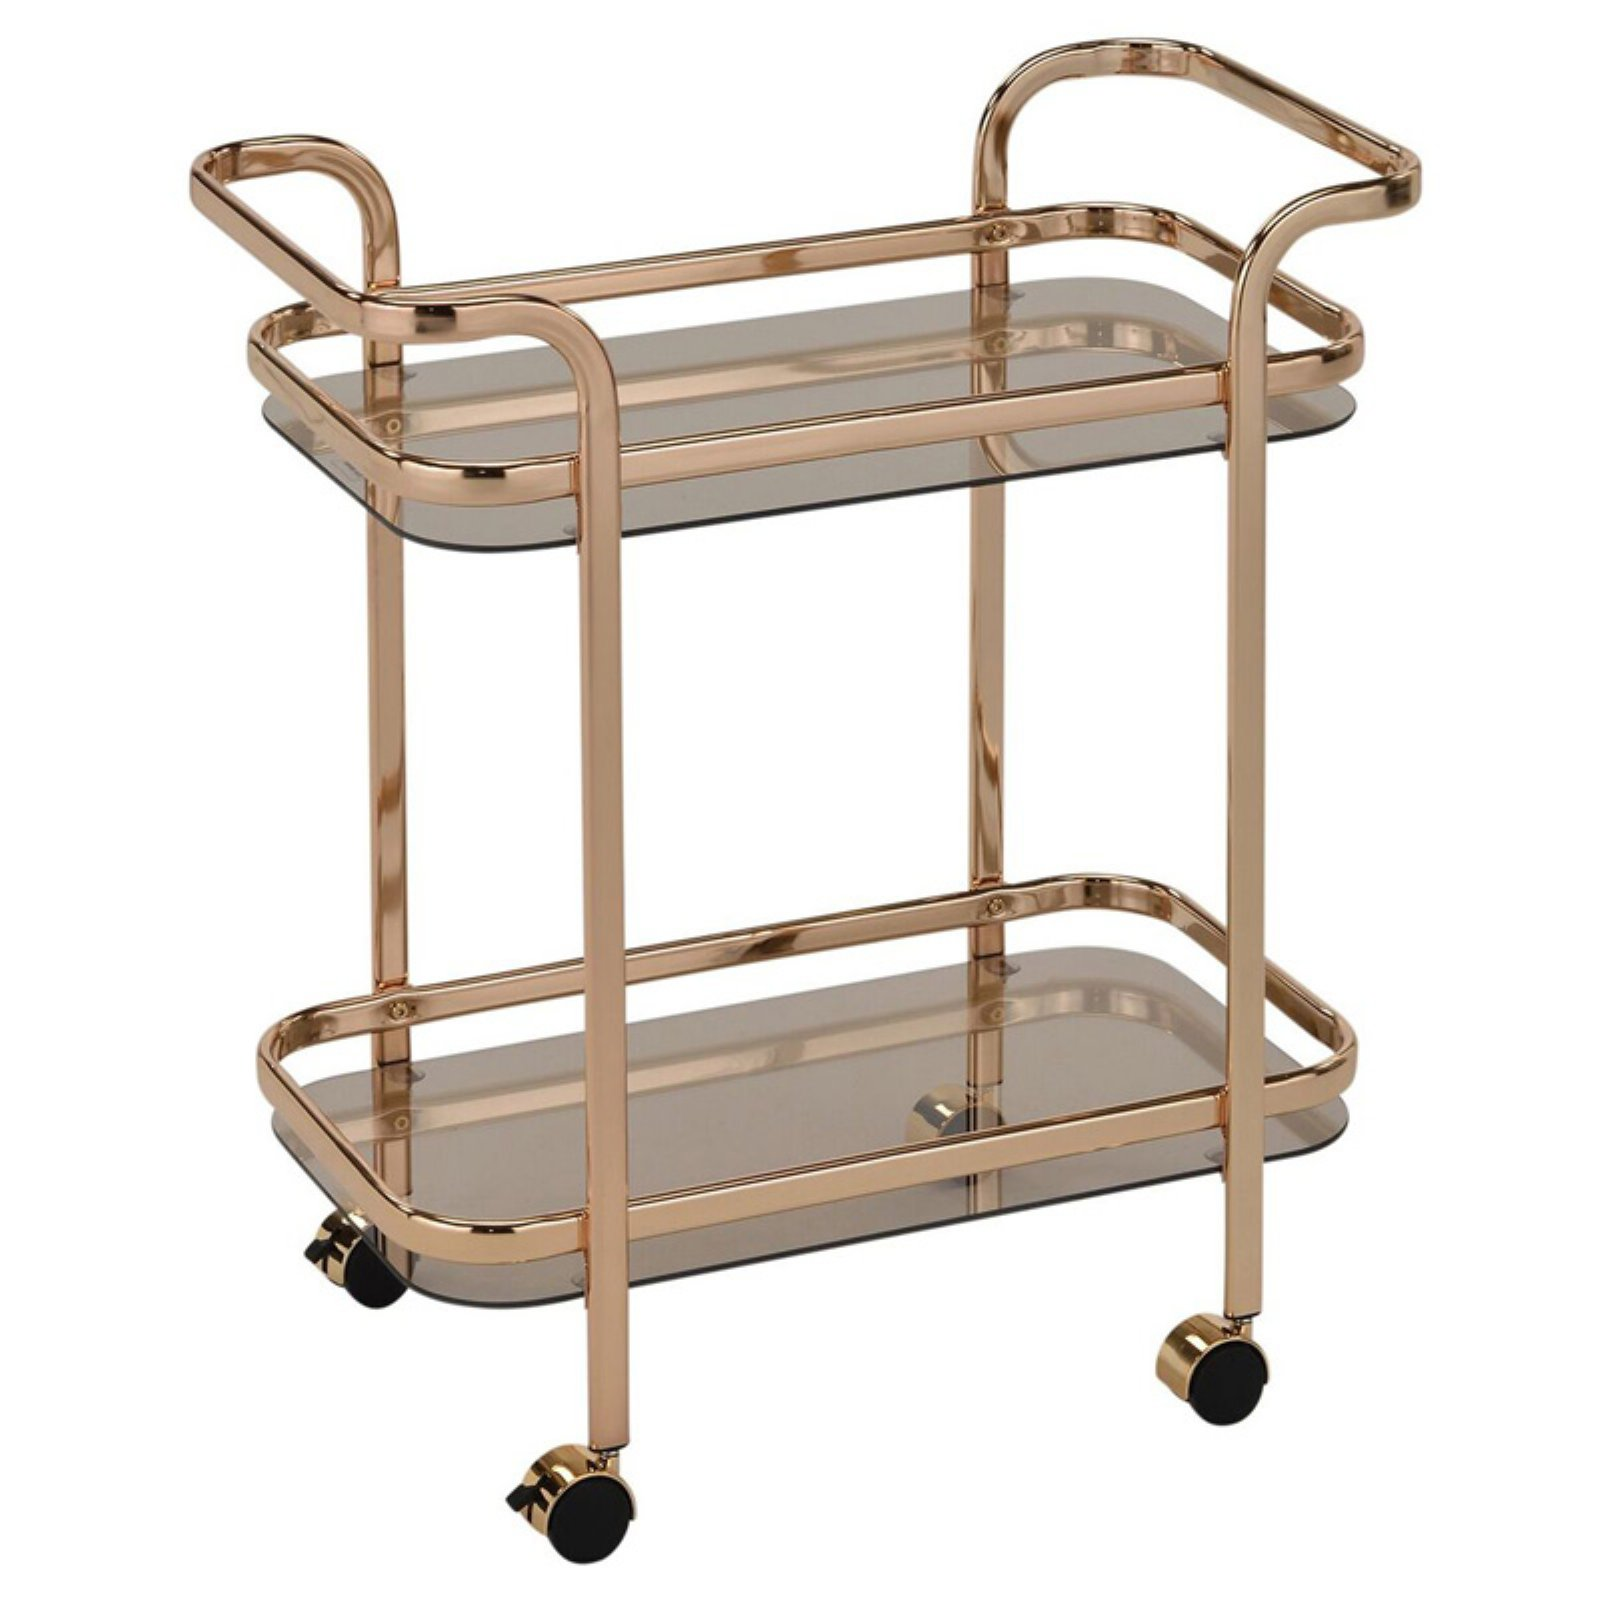 2 Tier Gold/Glass Bar Cart